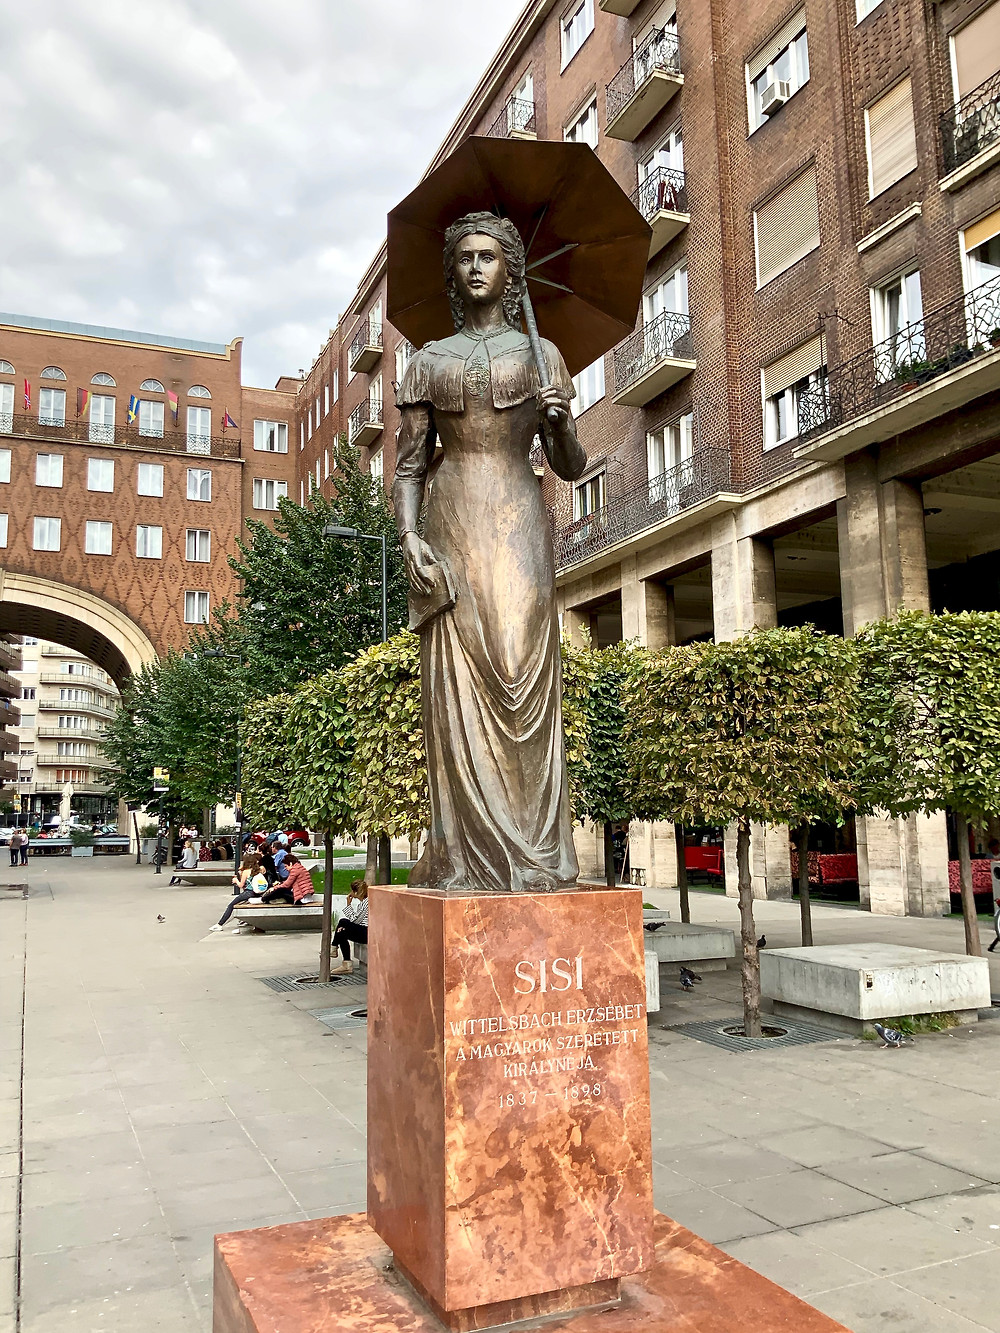 new sculpture of Empress Sisi, at the entrance of Erzsébetváros (District VII) in Madách Square